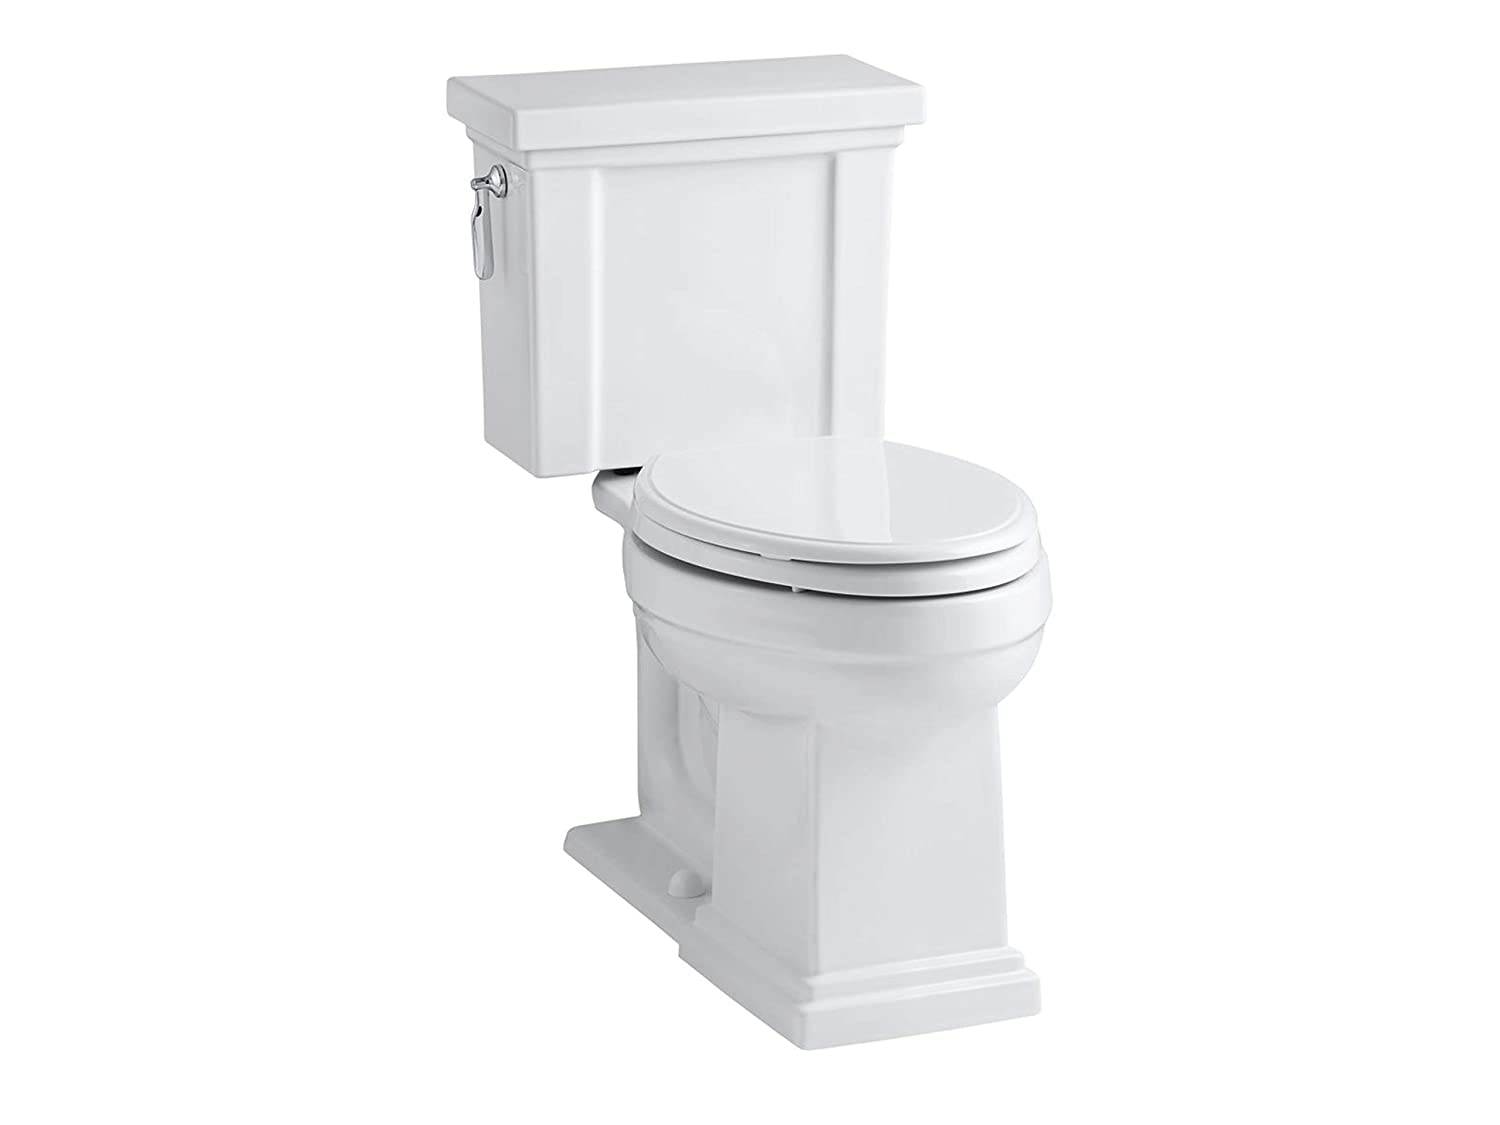 Top 5 Best 1.28 GPF Toilets Online Reviews in 2020 4